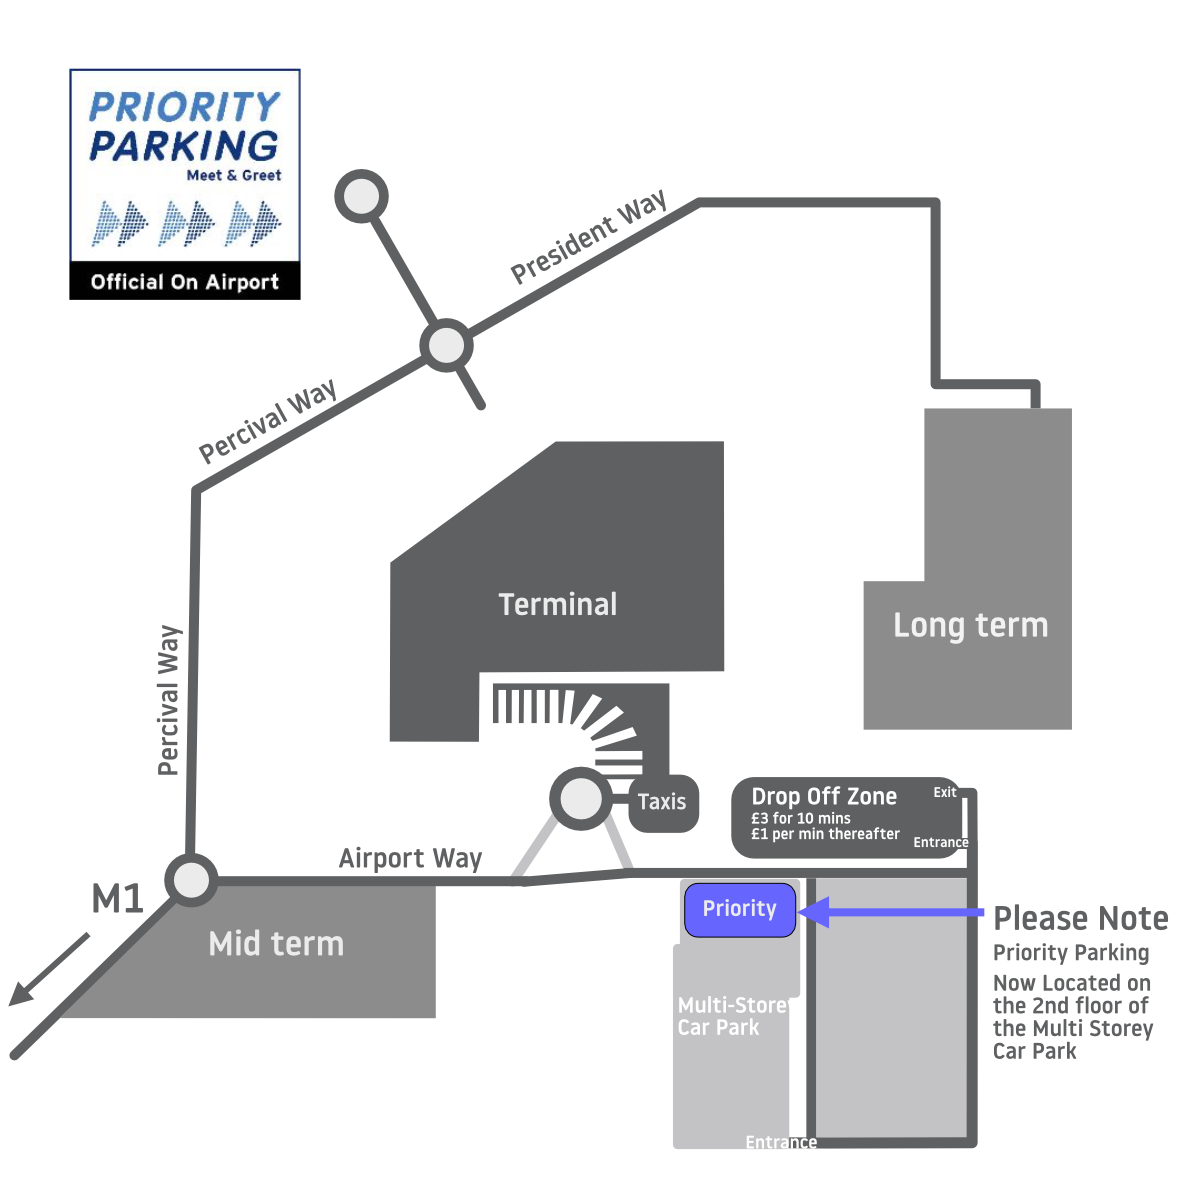 map of priority car parking CDL Walk around Inspection Diagram find priority parking